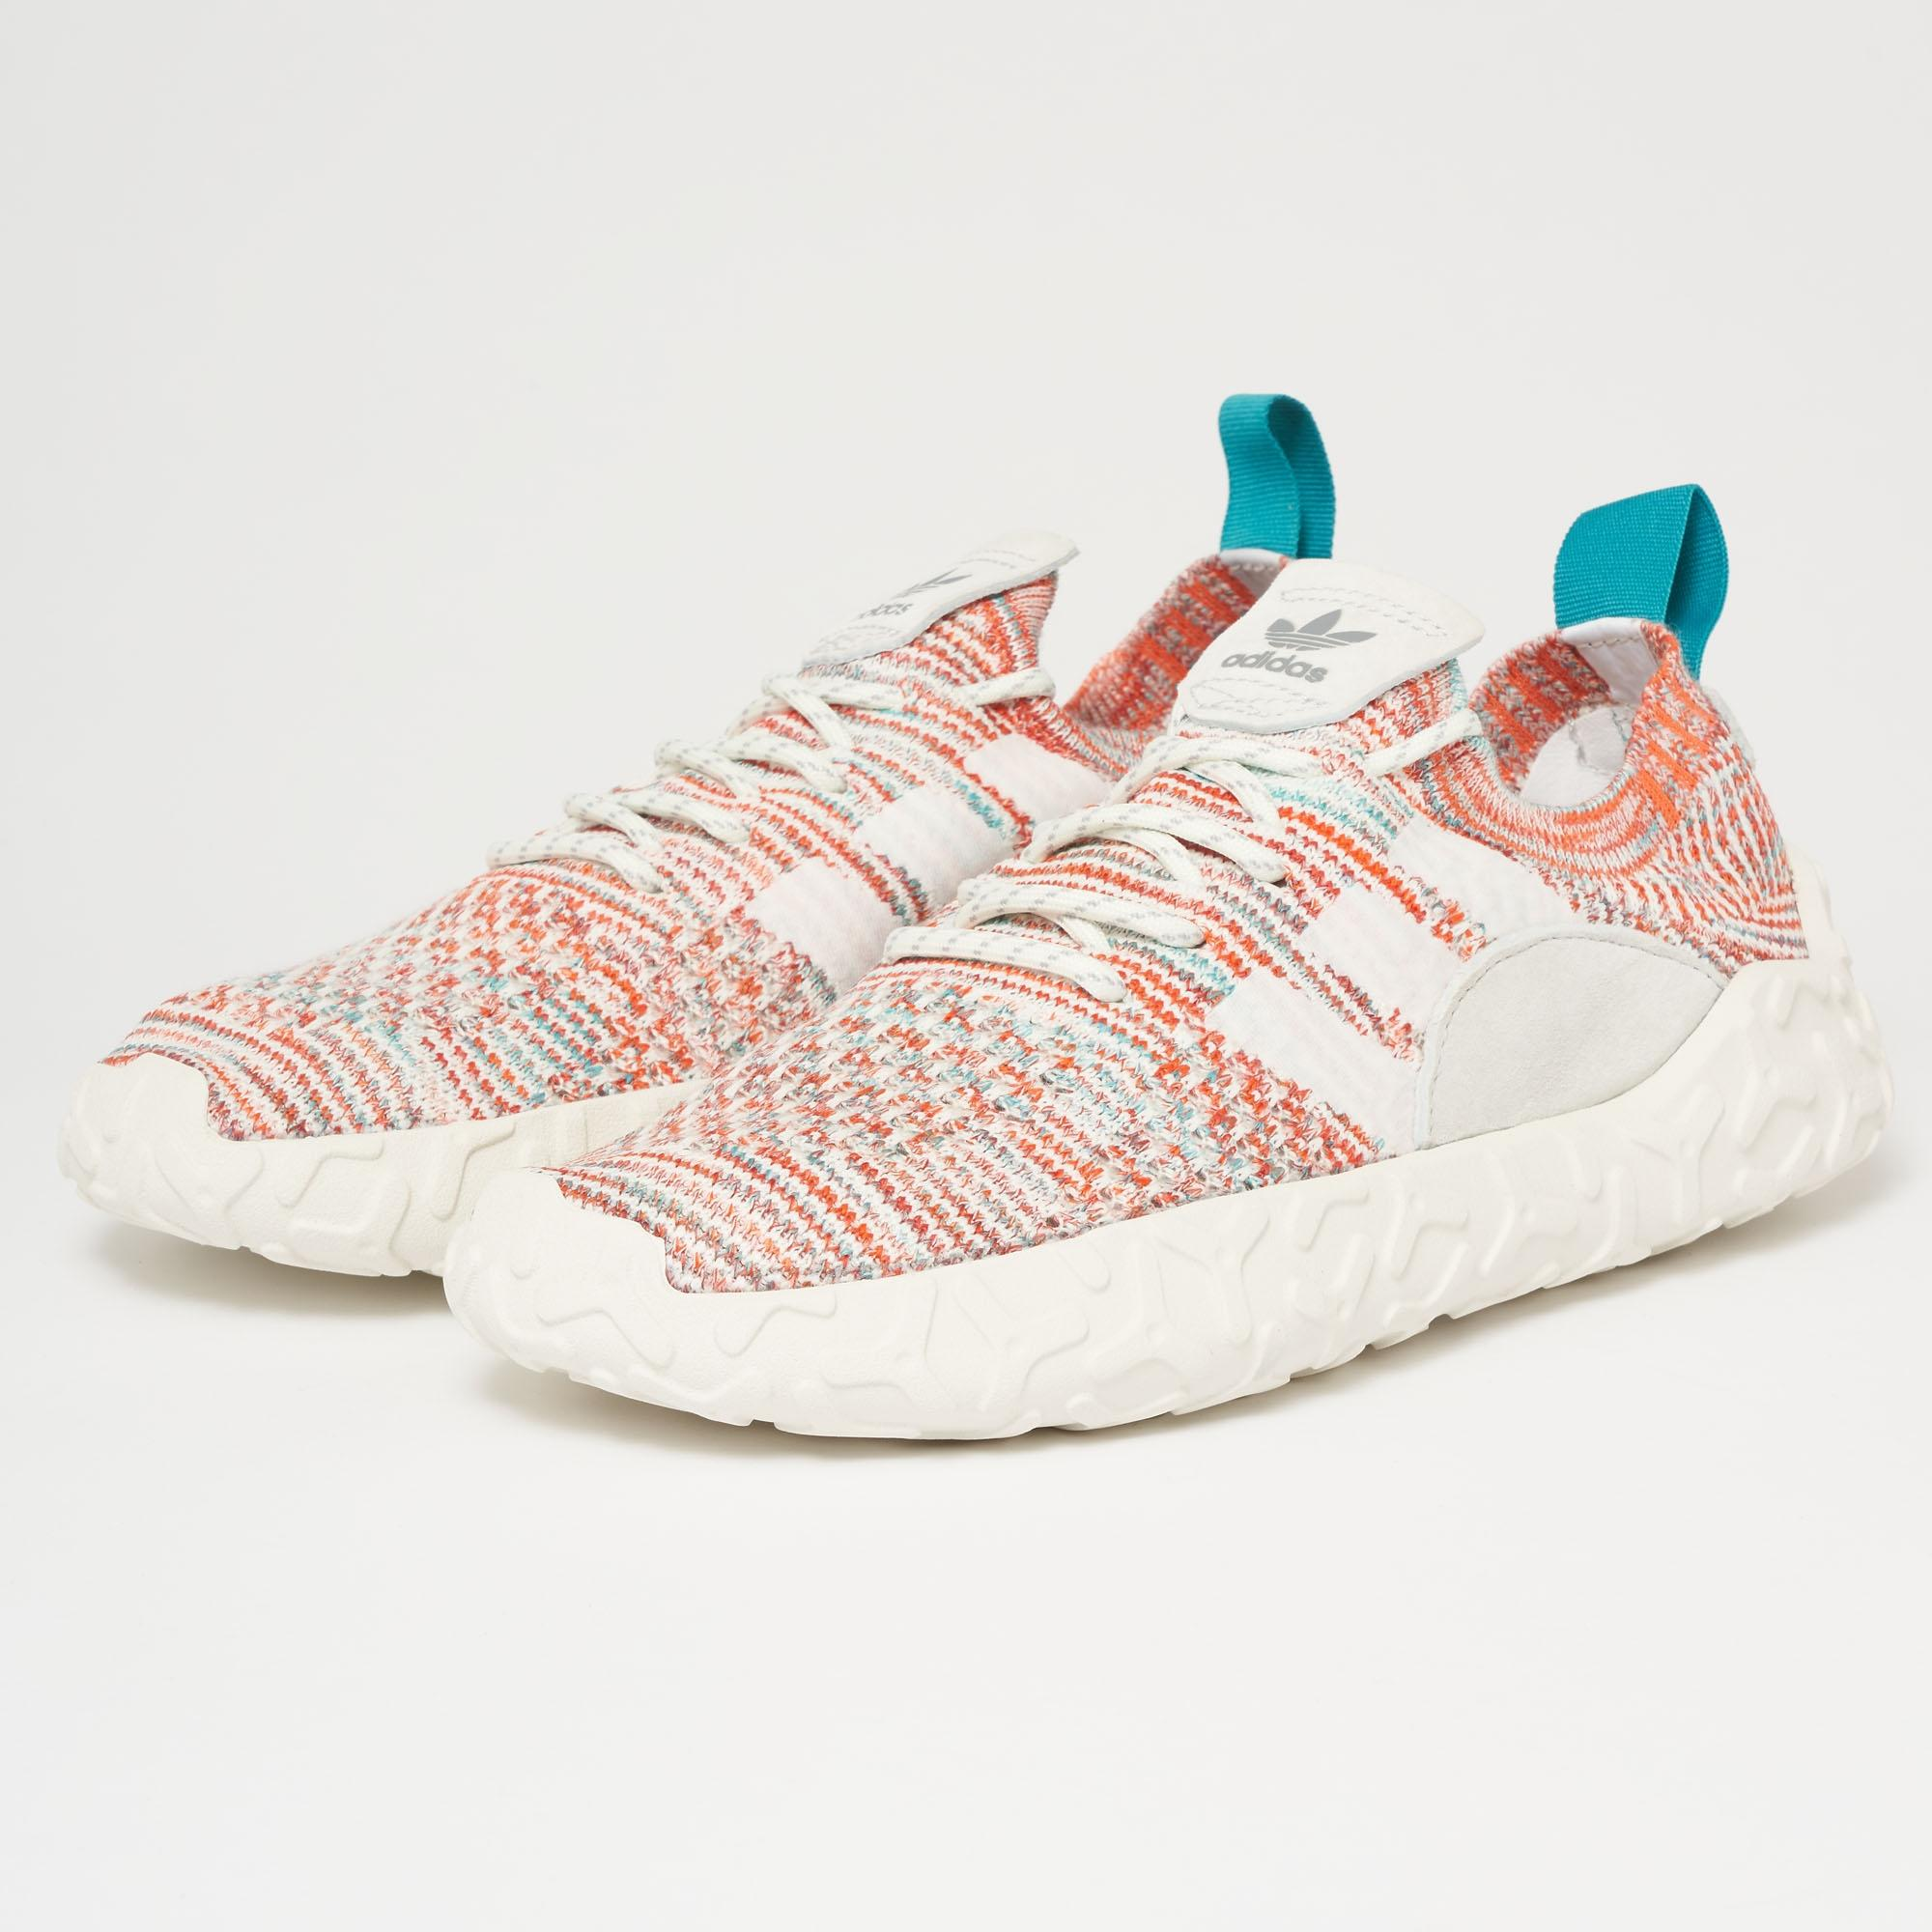 adidas Originals F/22 PK FTWR White-Crystal White-Trace Orange 105